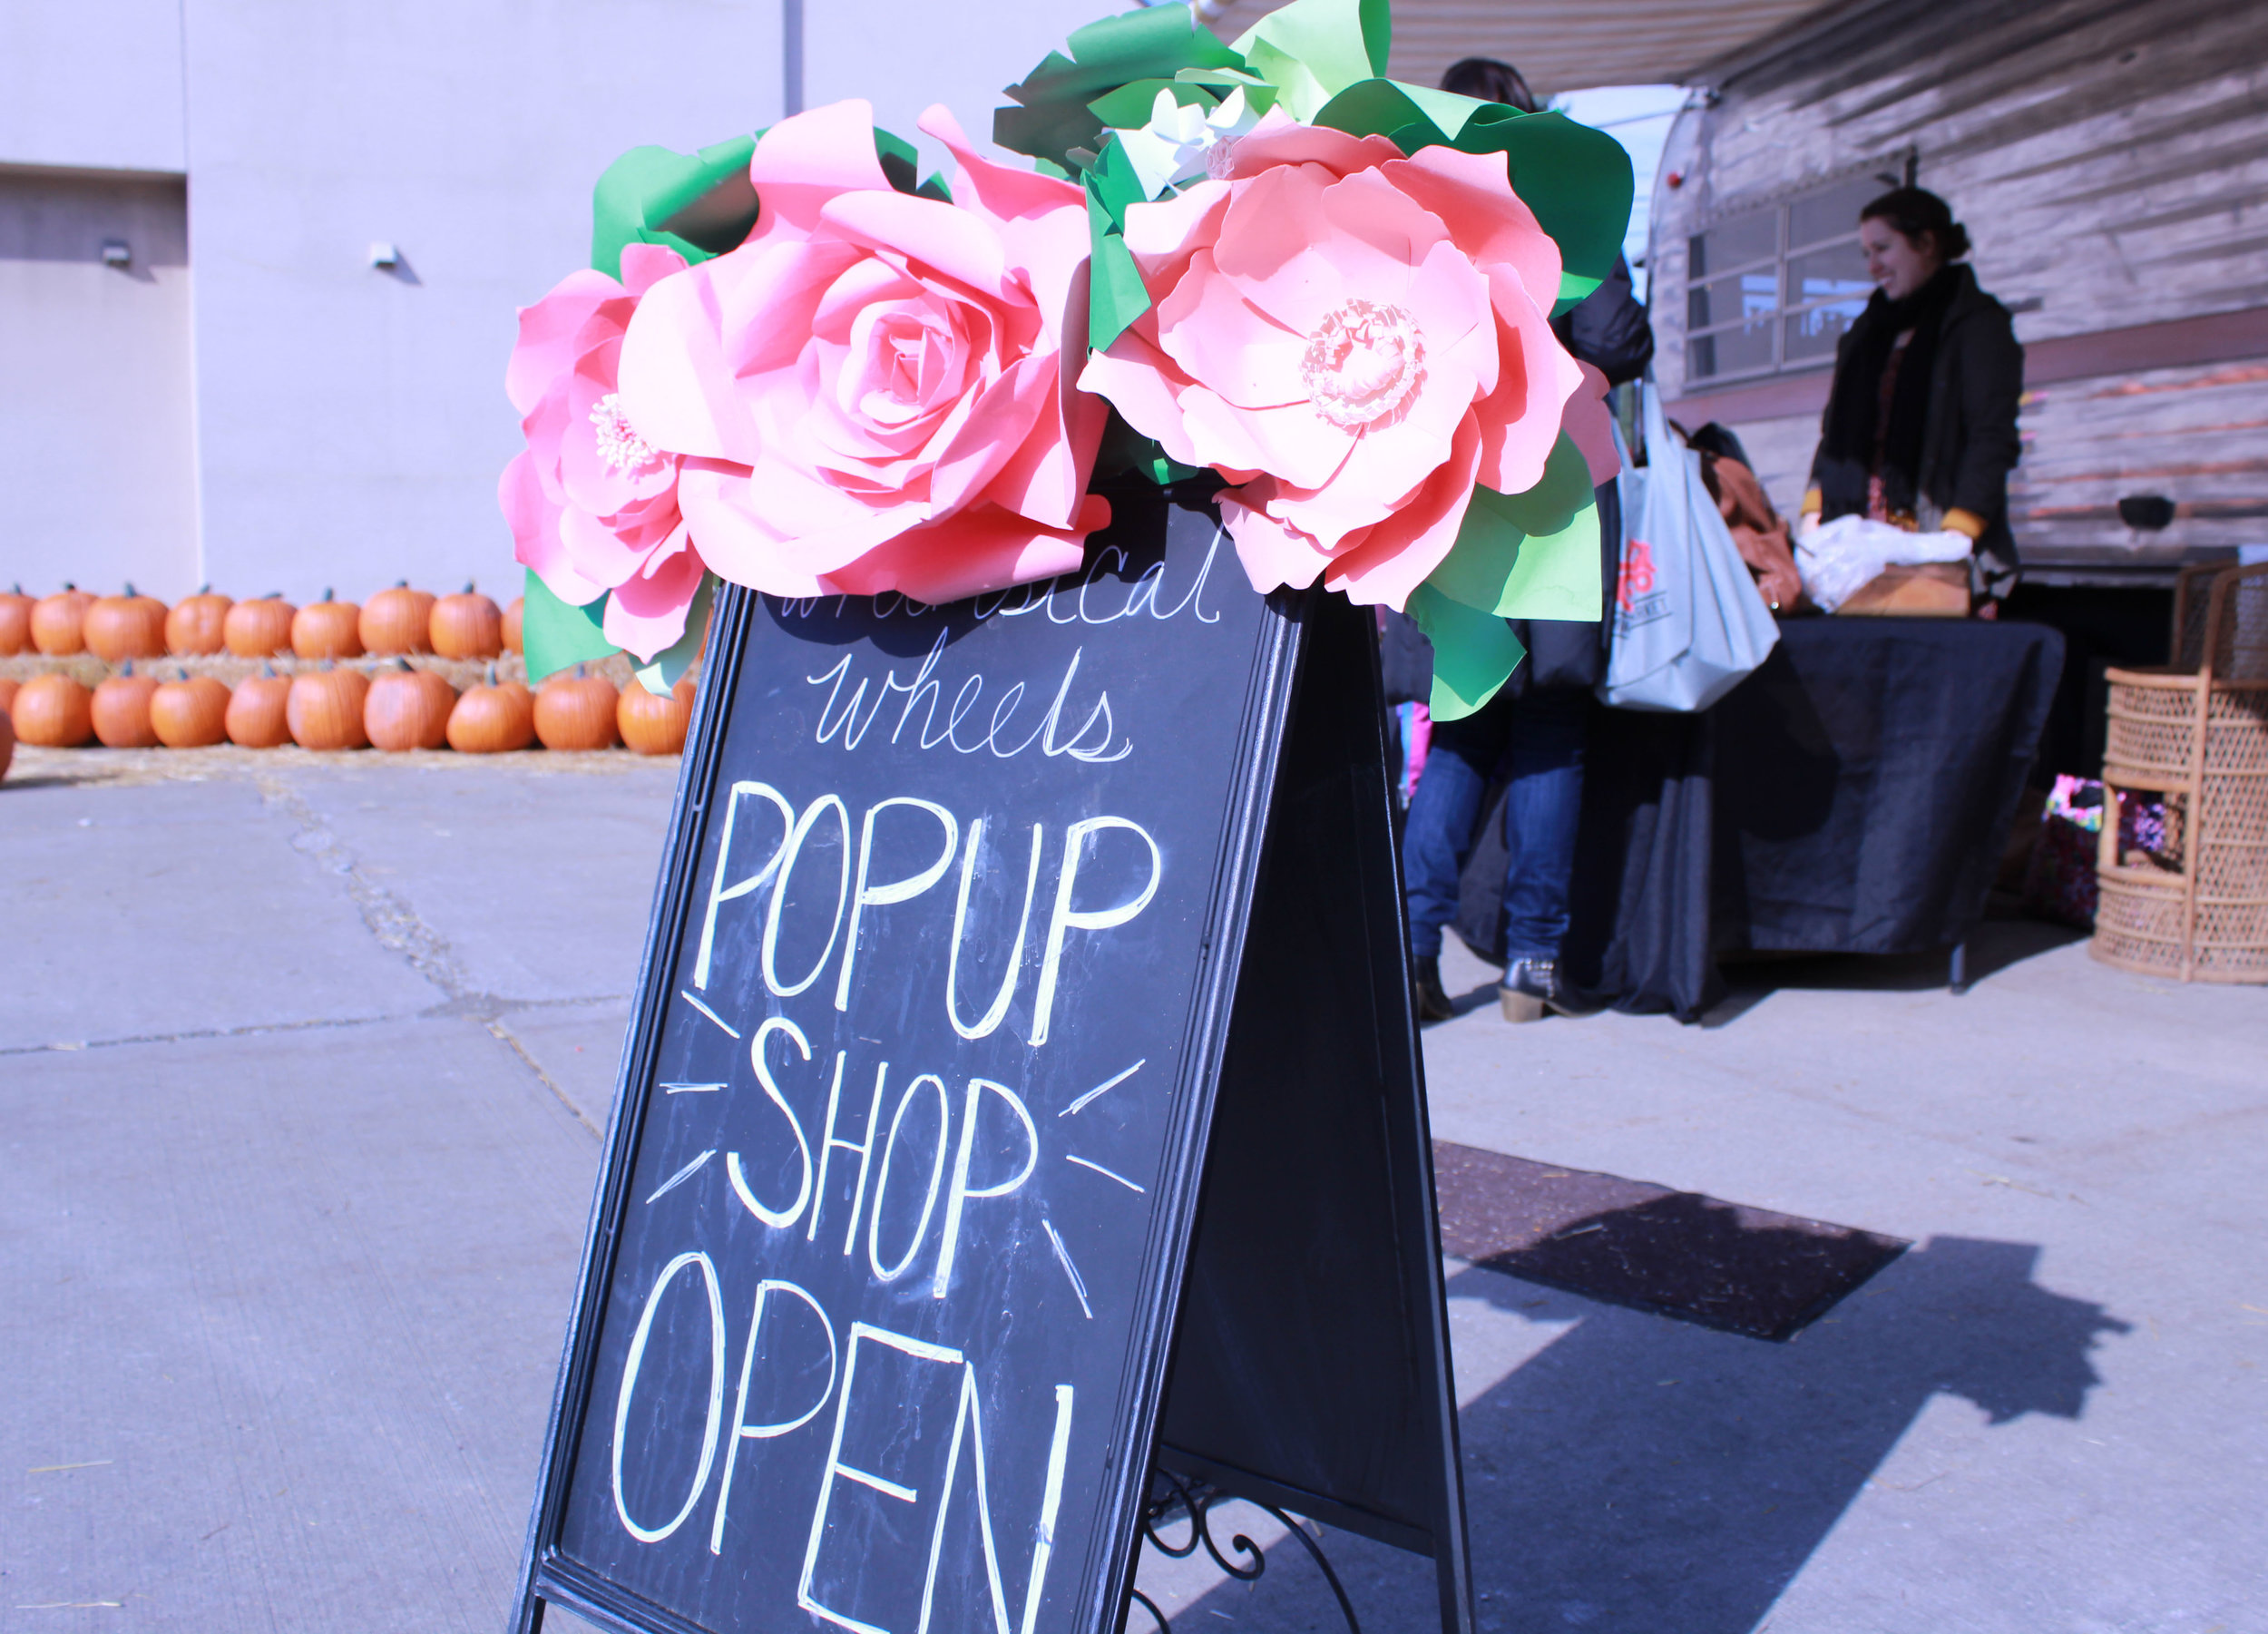 Pop up mini store. One of the many vendors at Harvest days had a actual trailer set up. She had plenty from sweet smelling candles to unique looking shot glasses.